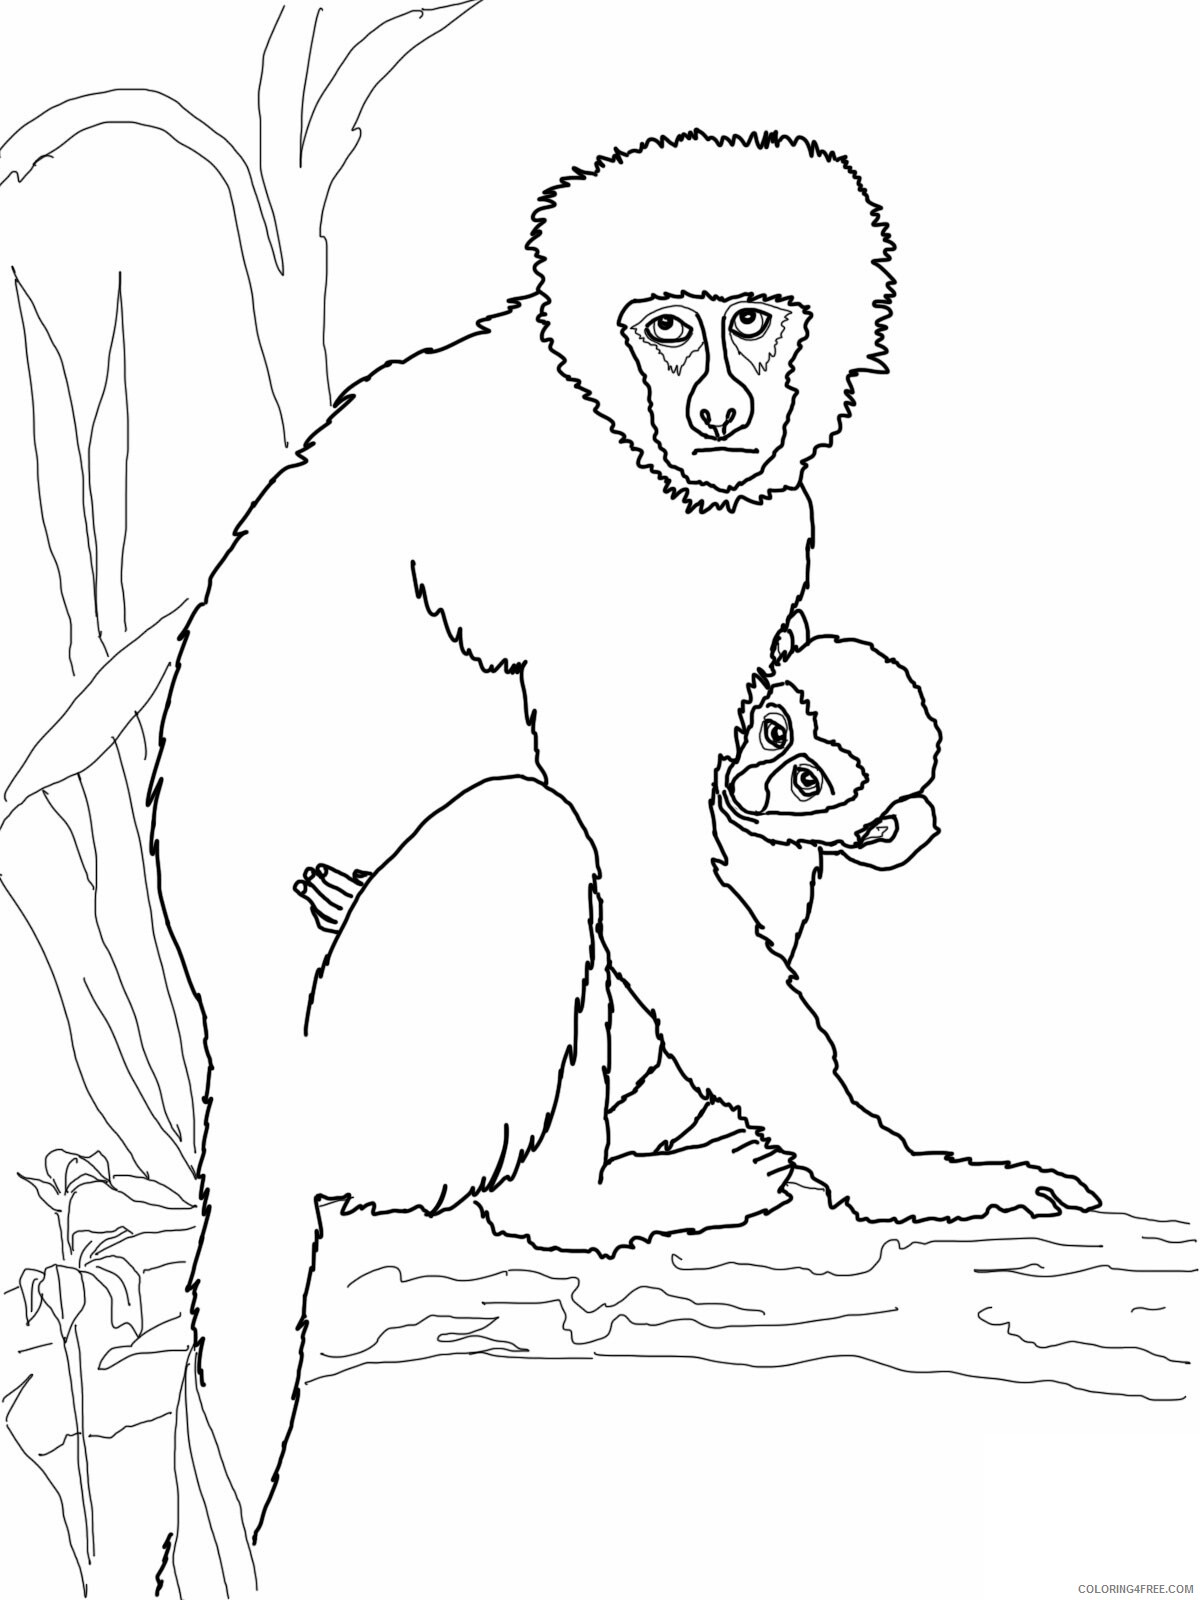 Monkey Coloring Pages Animal Printable Sheets Cute Monkeys 2021 3302 Coloring4free